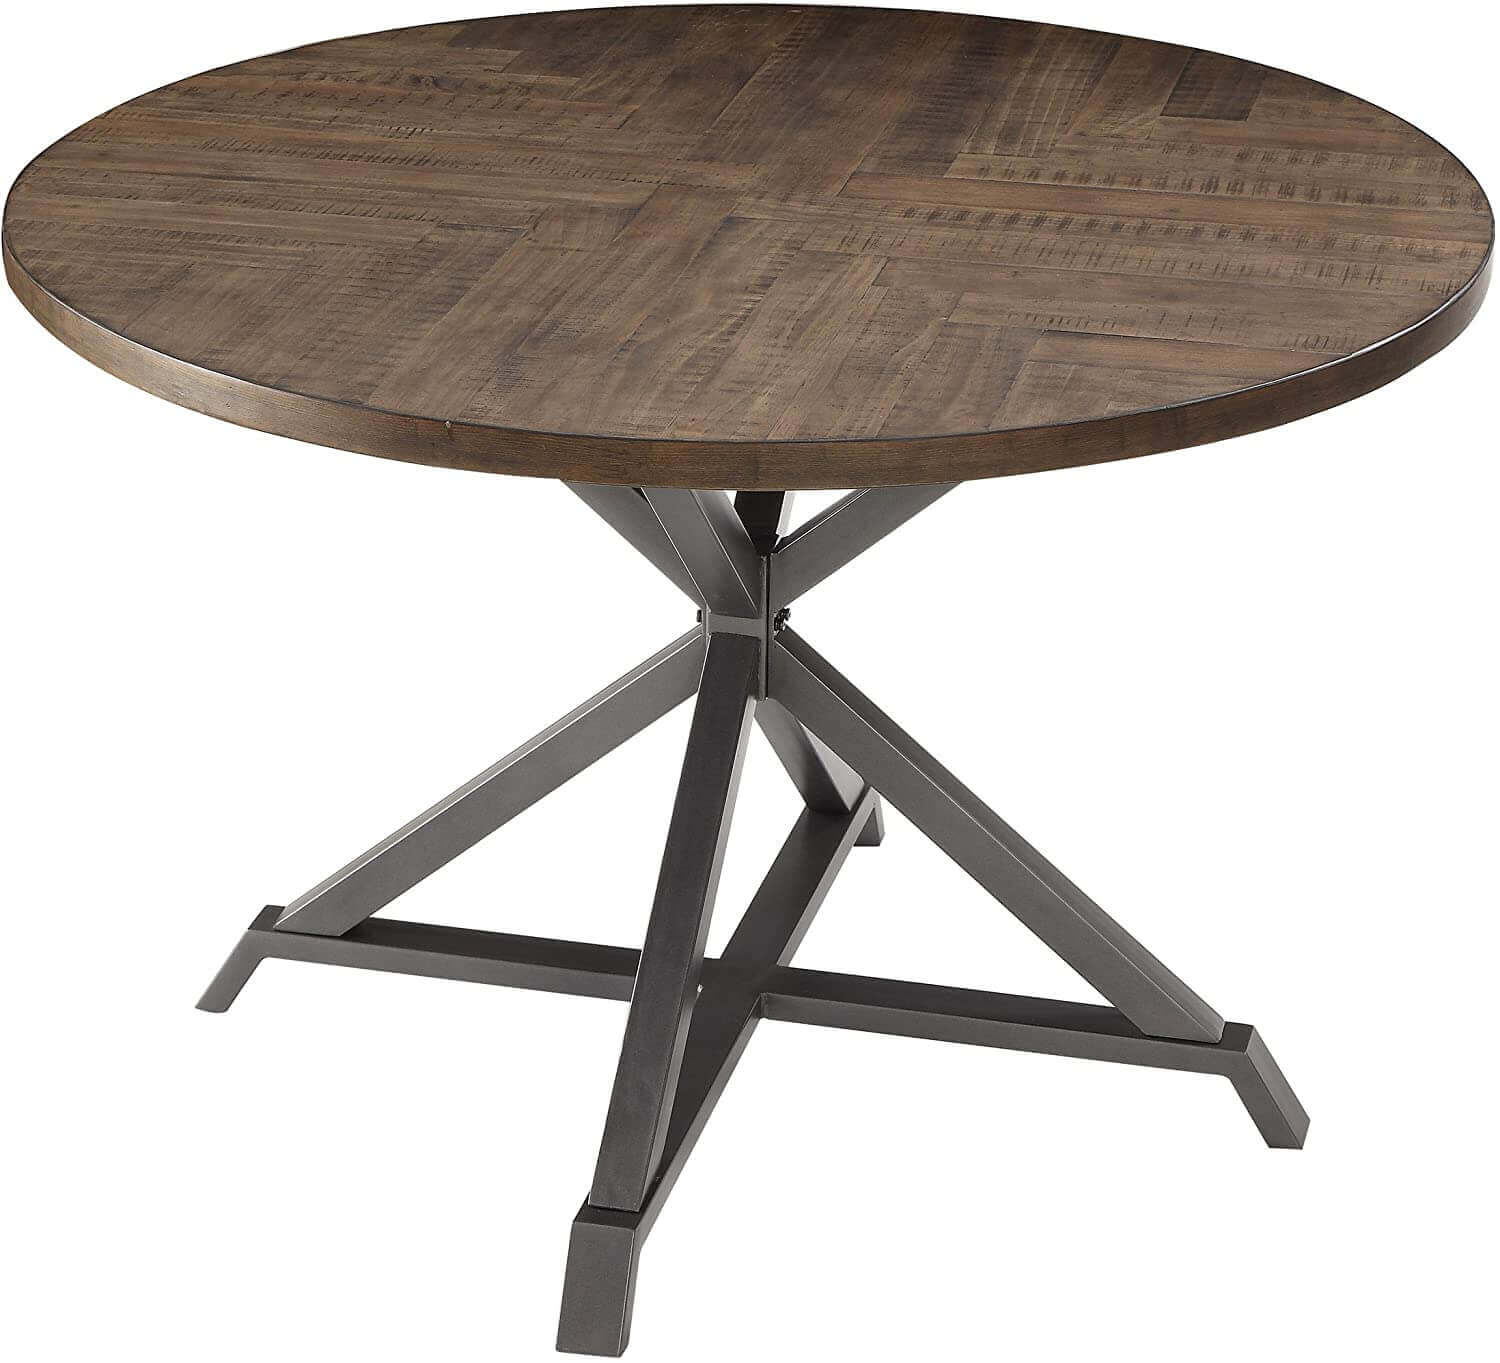 Industrial Style Round Metal and Wood Dining Table